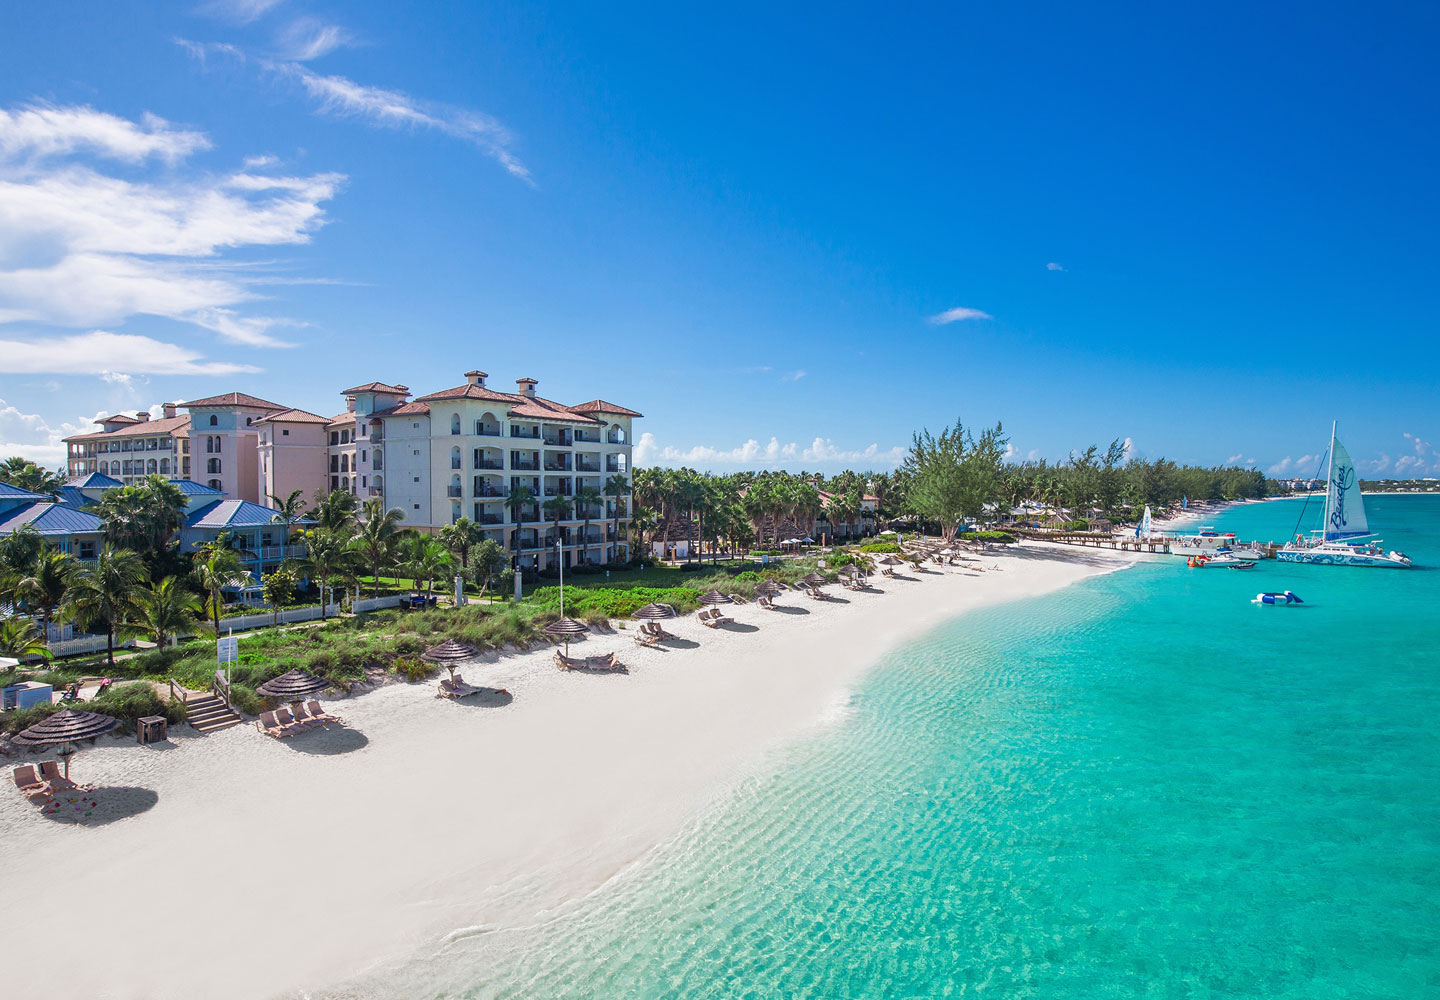 Beaches Resorts Black Friday & Cyber Monday Sales